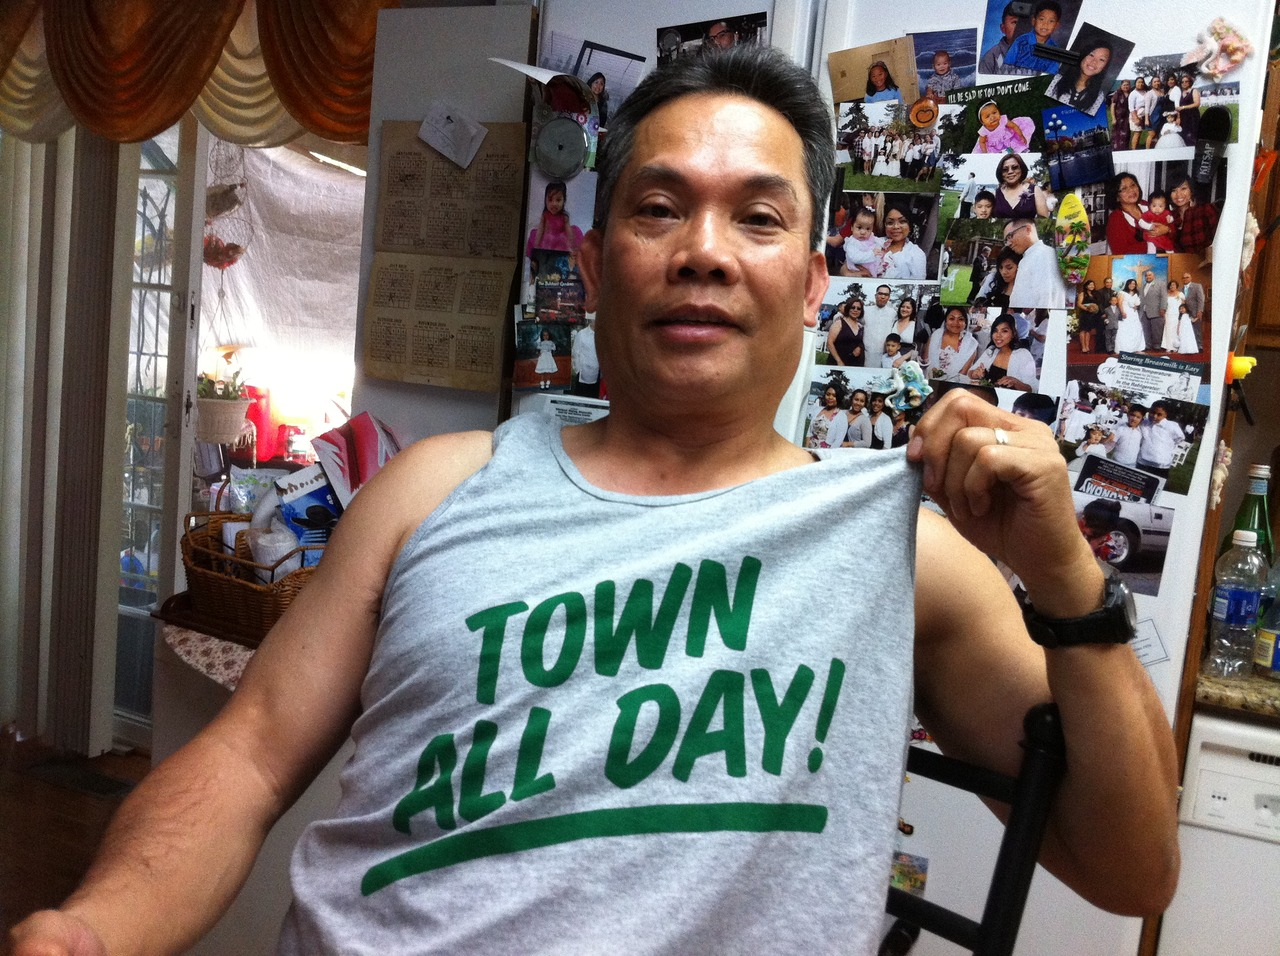 geo's pops rocking the soon-to-be-released town all day tank